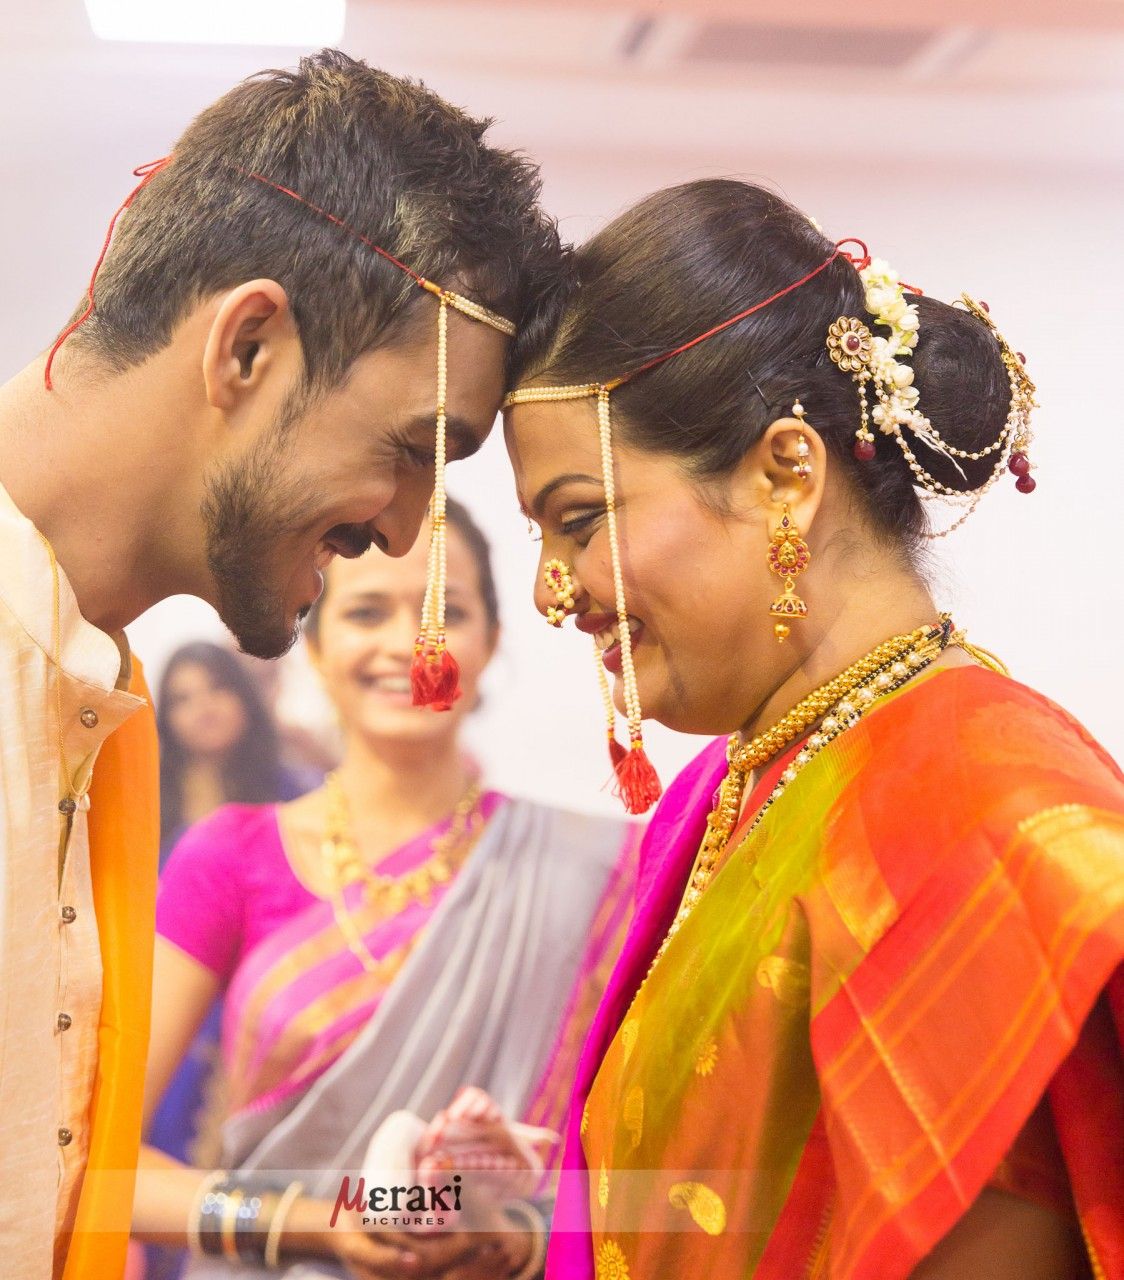 025-_D3_0512-Ajinkya_Maithili_Wedding-WeddingDay-WBS